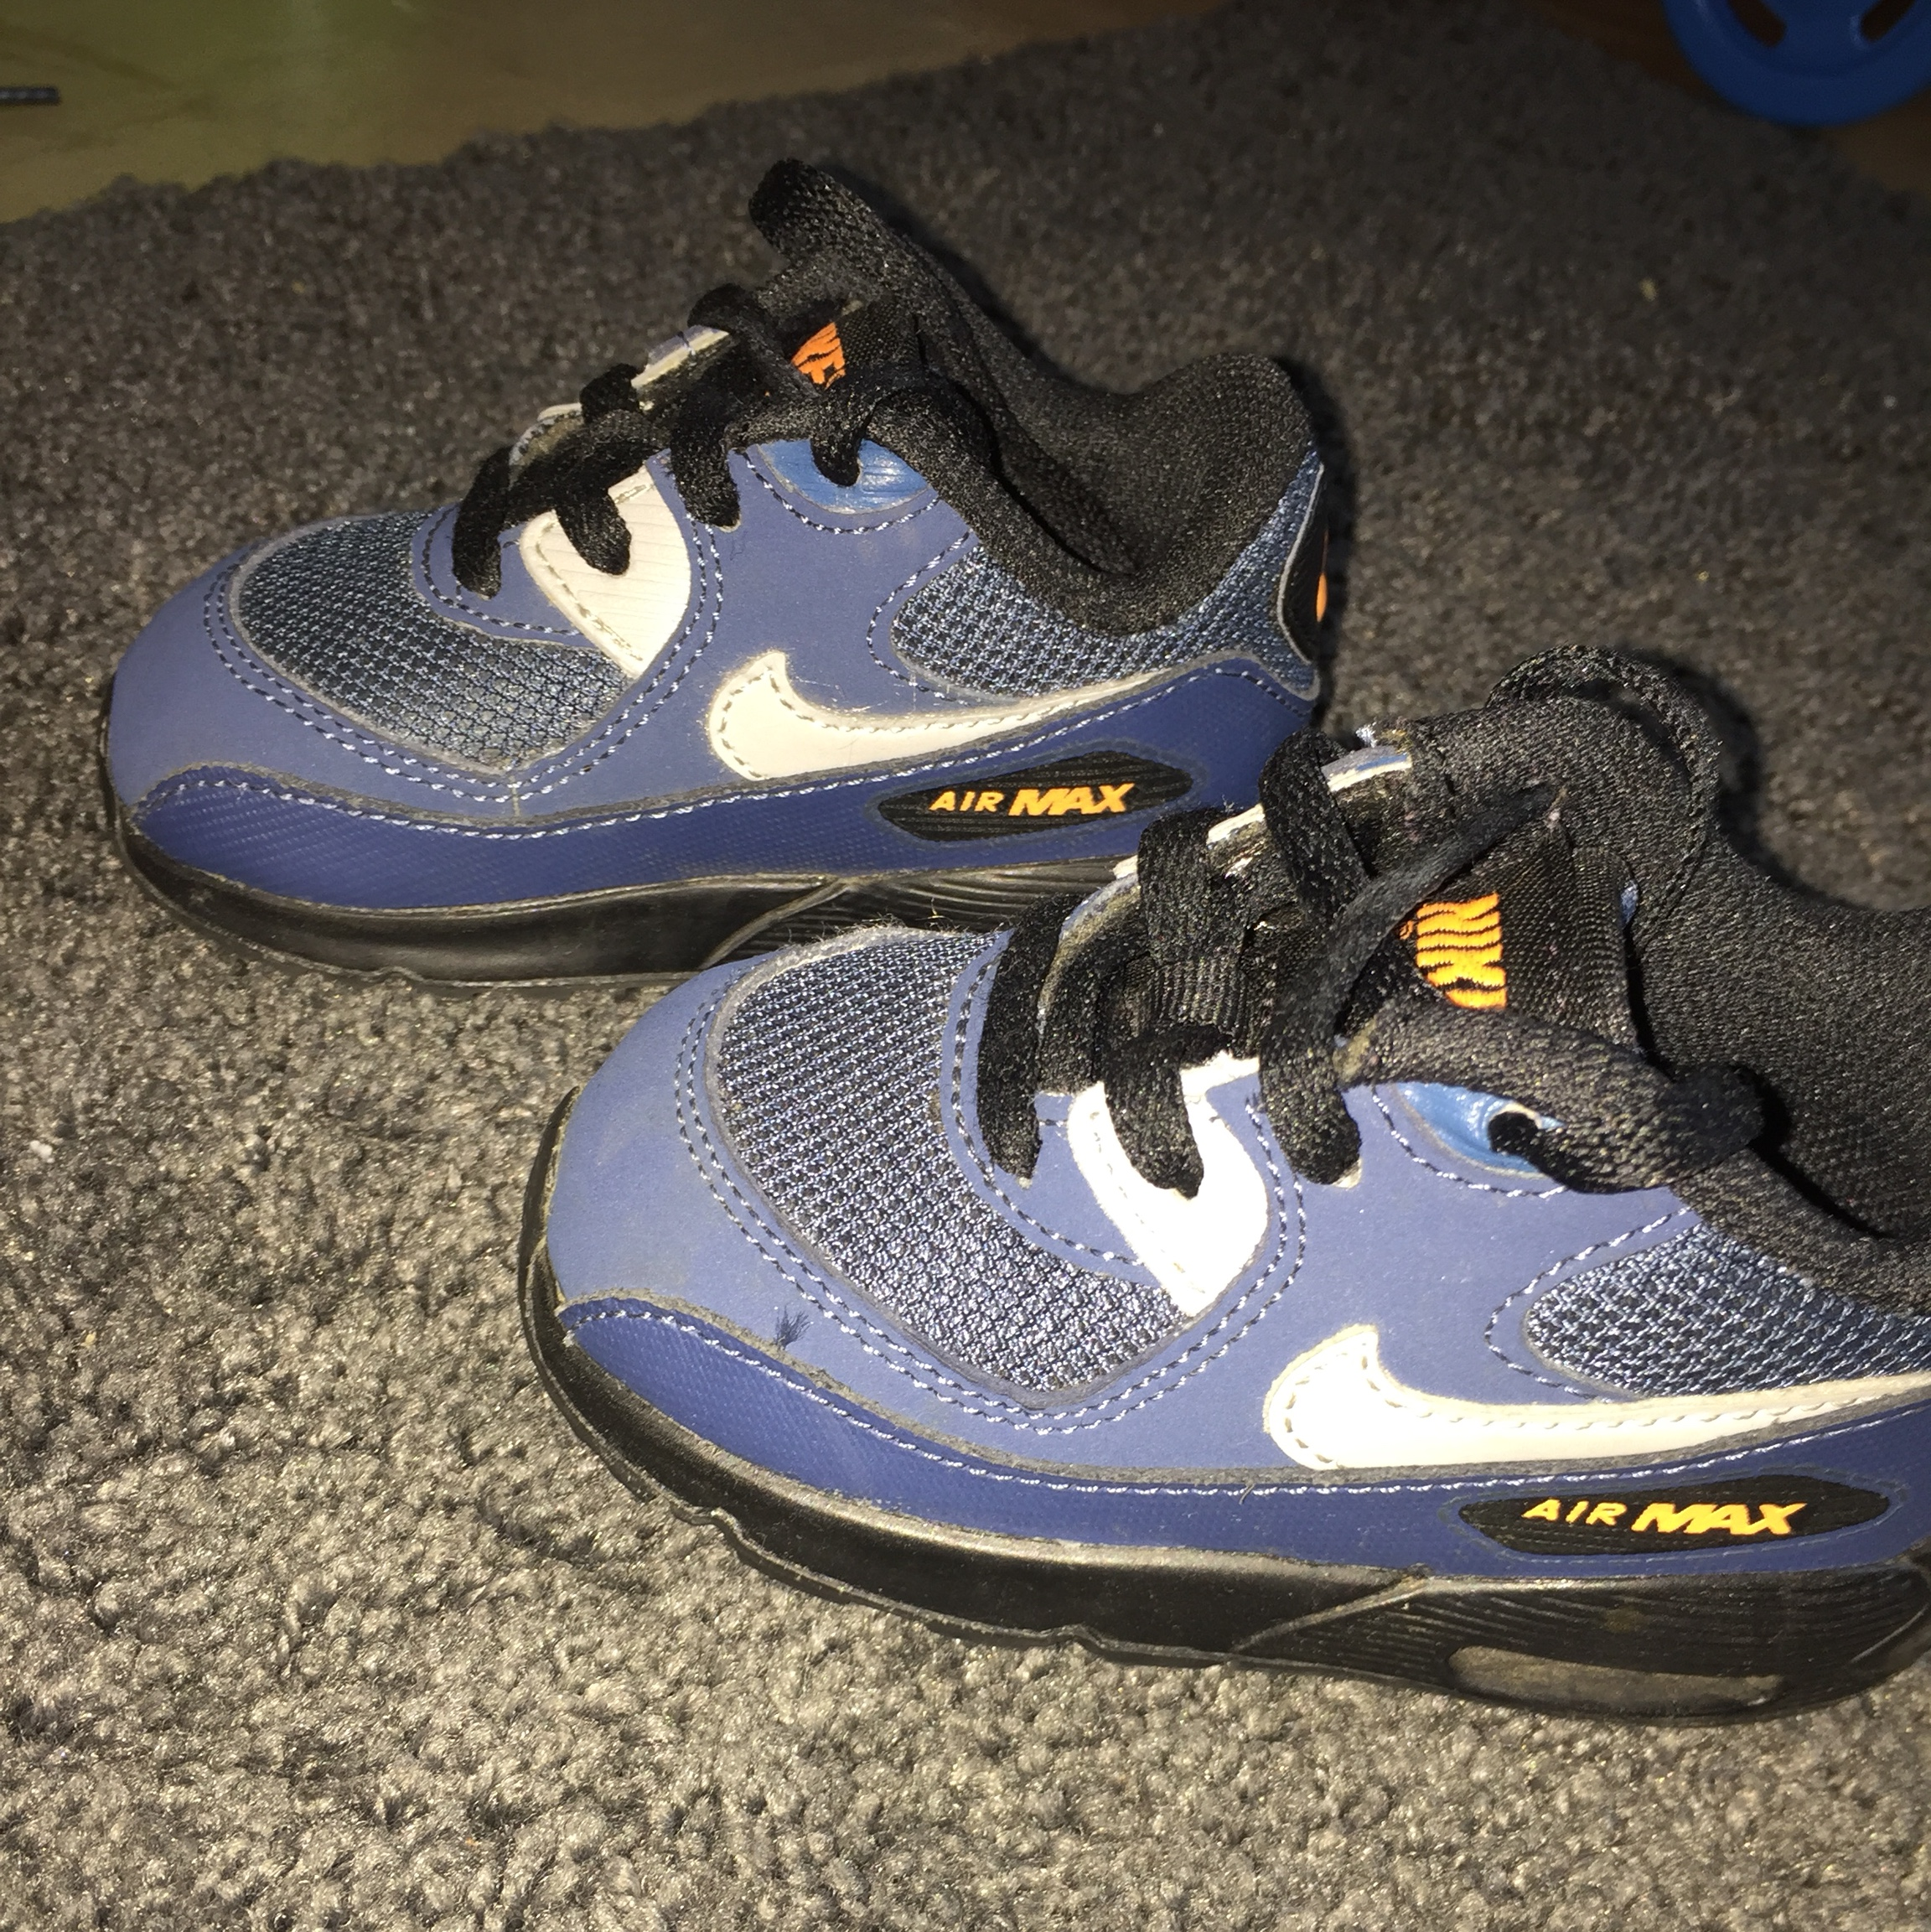 Nike air max 90's Infants Trainers 3.5 Excellent Depop